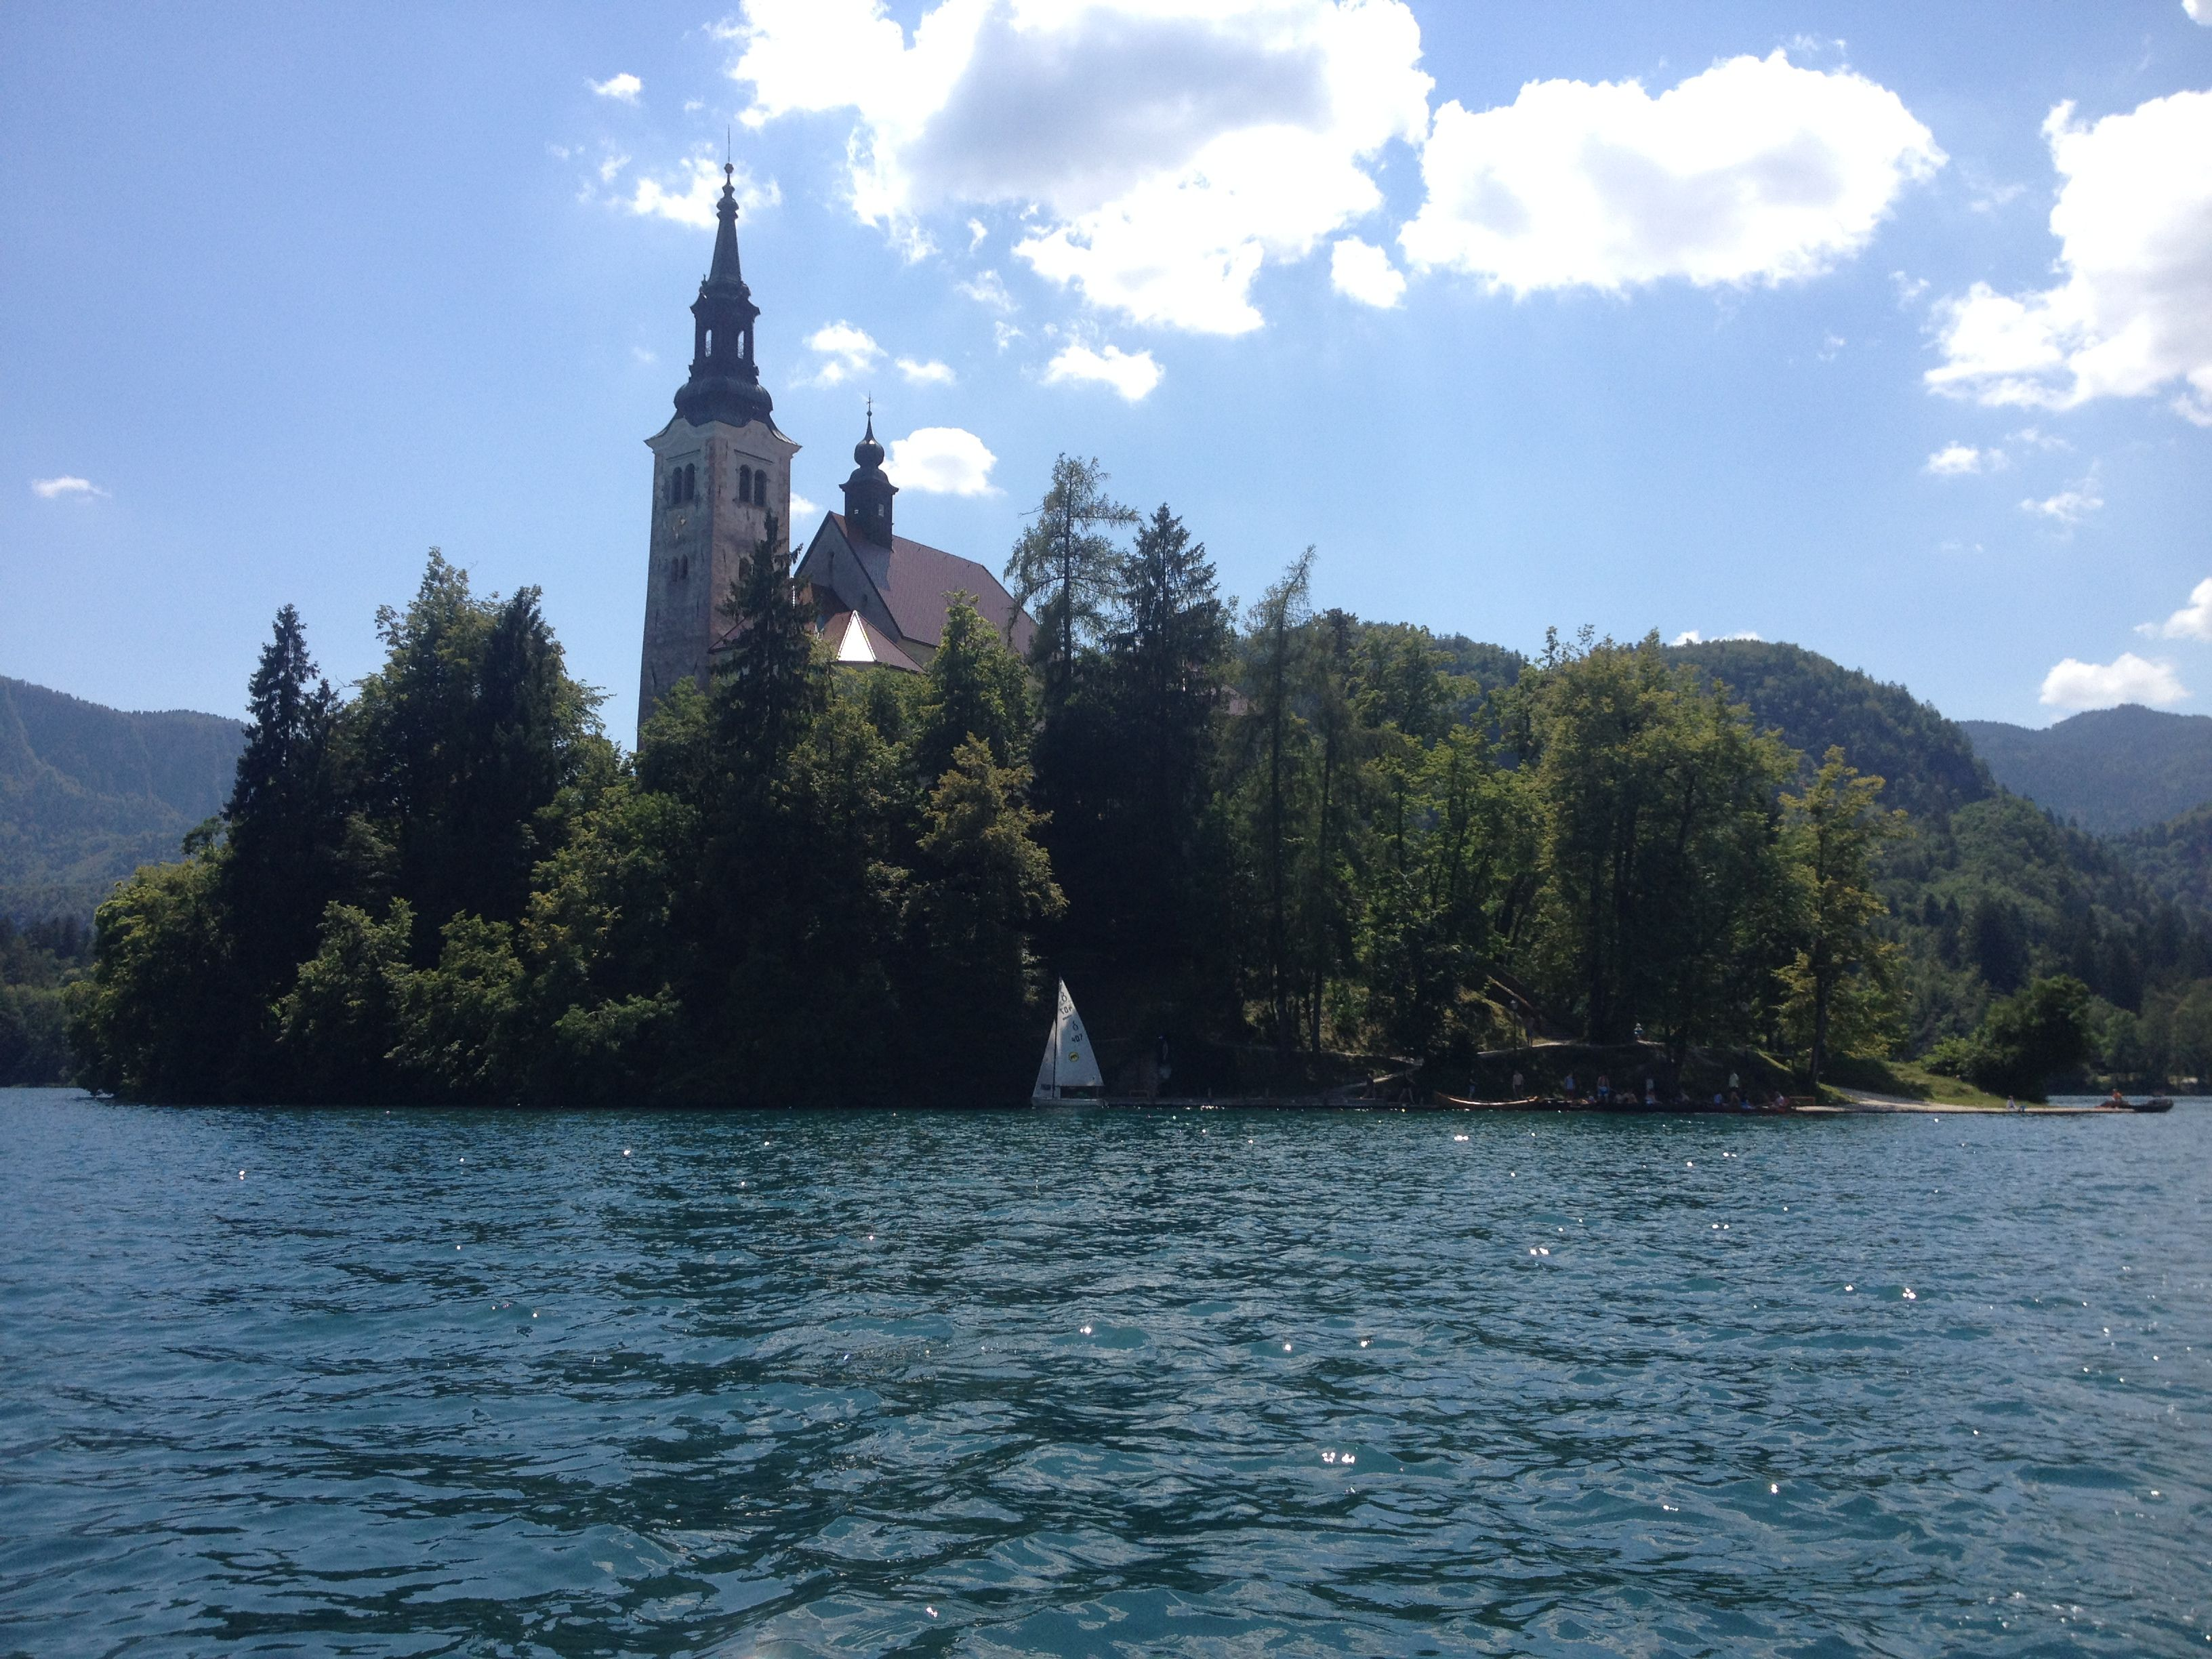 Island in the middle of the Lake Bled, Slovenia